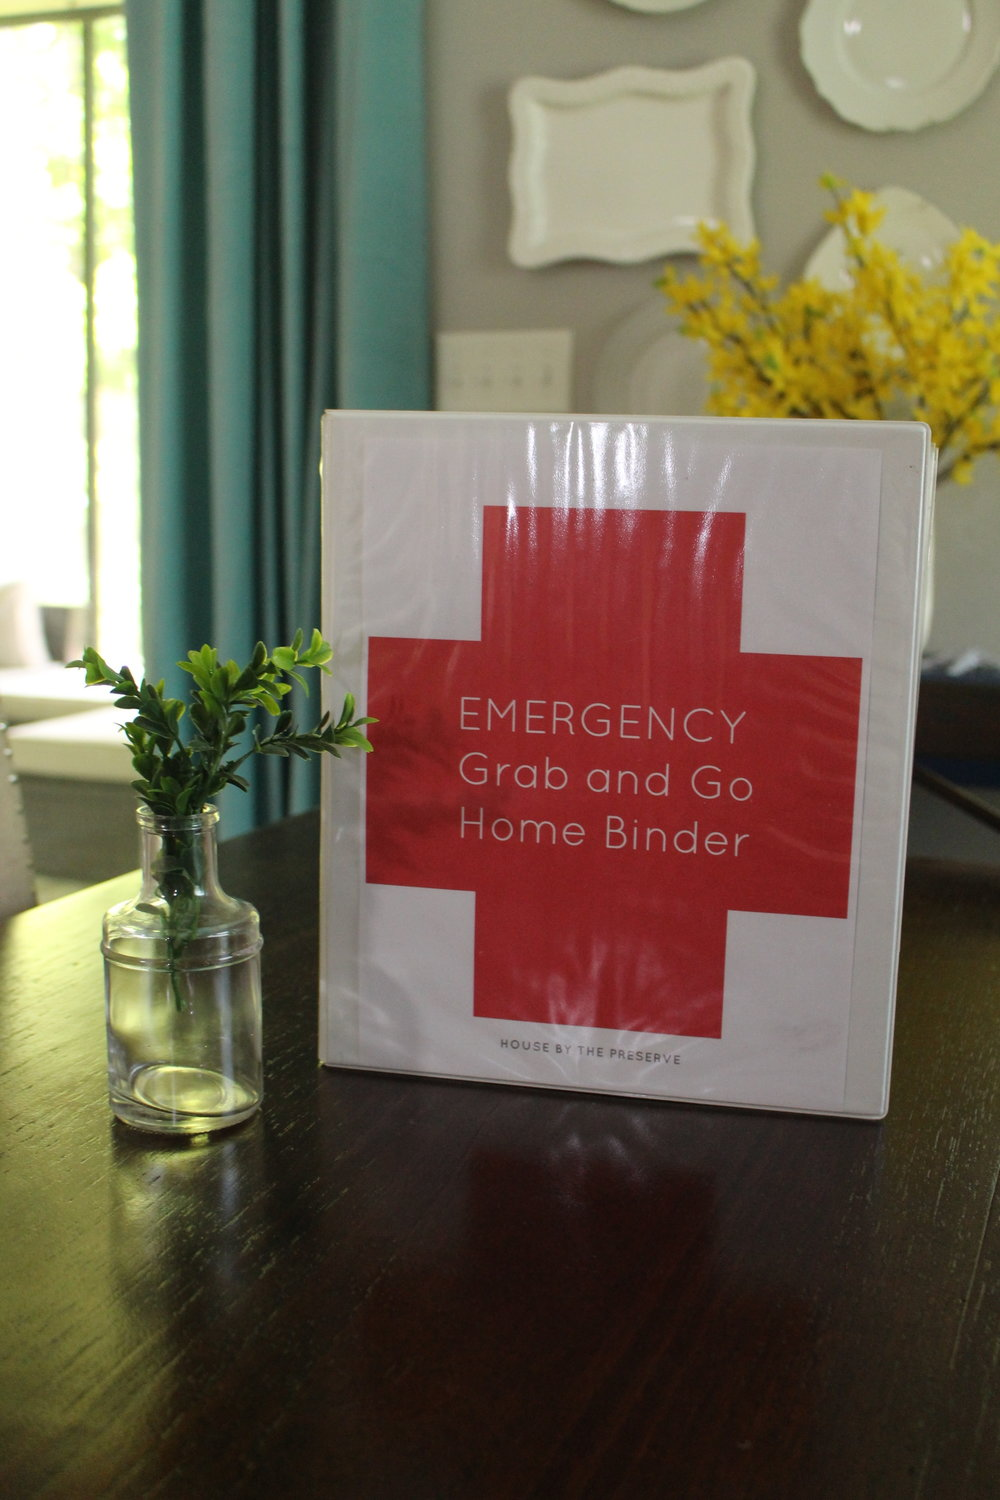 Emergency grab & go home binder - House by the Preserve